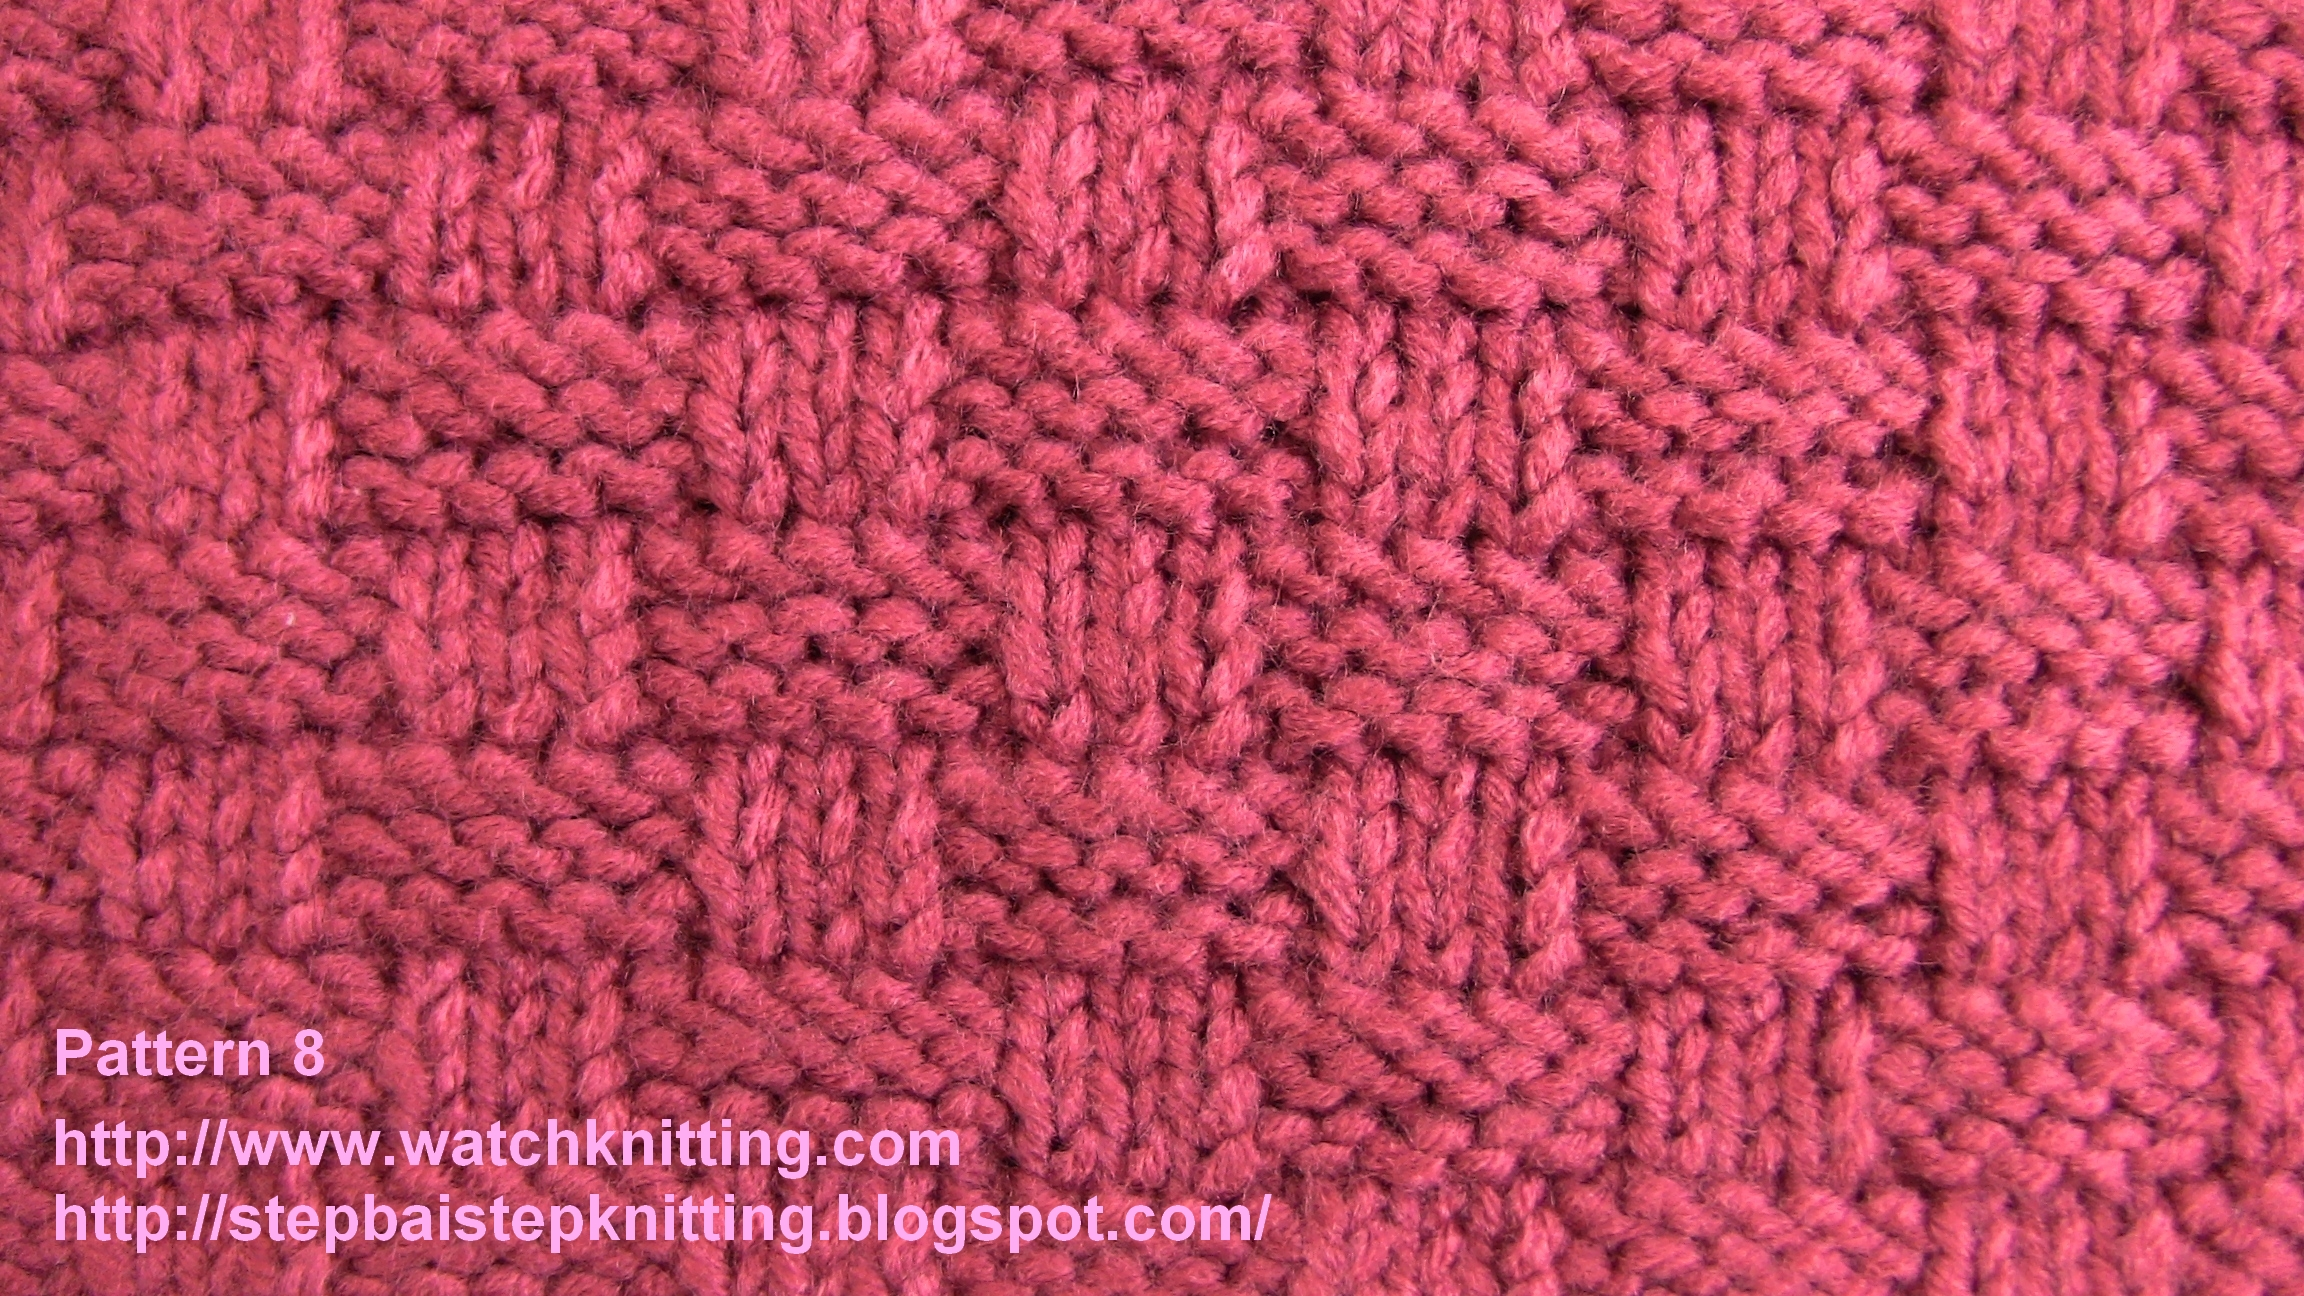 Simple Knitting Stitch Patterns : watch Simple Knitting Models - Pattern 8 (Basket model)